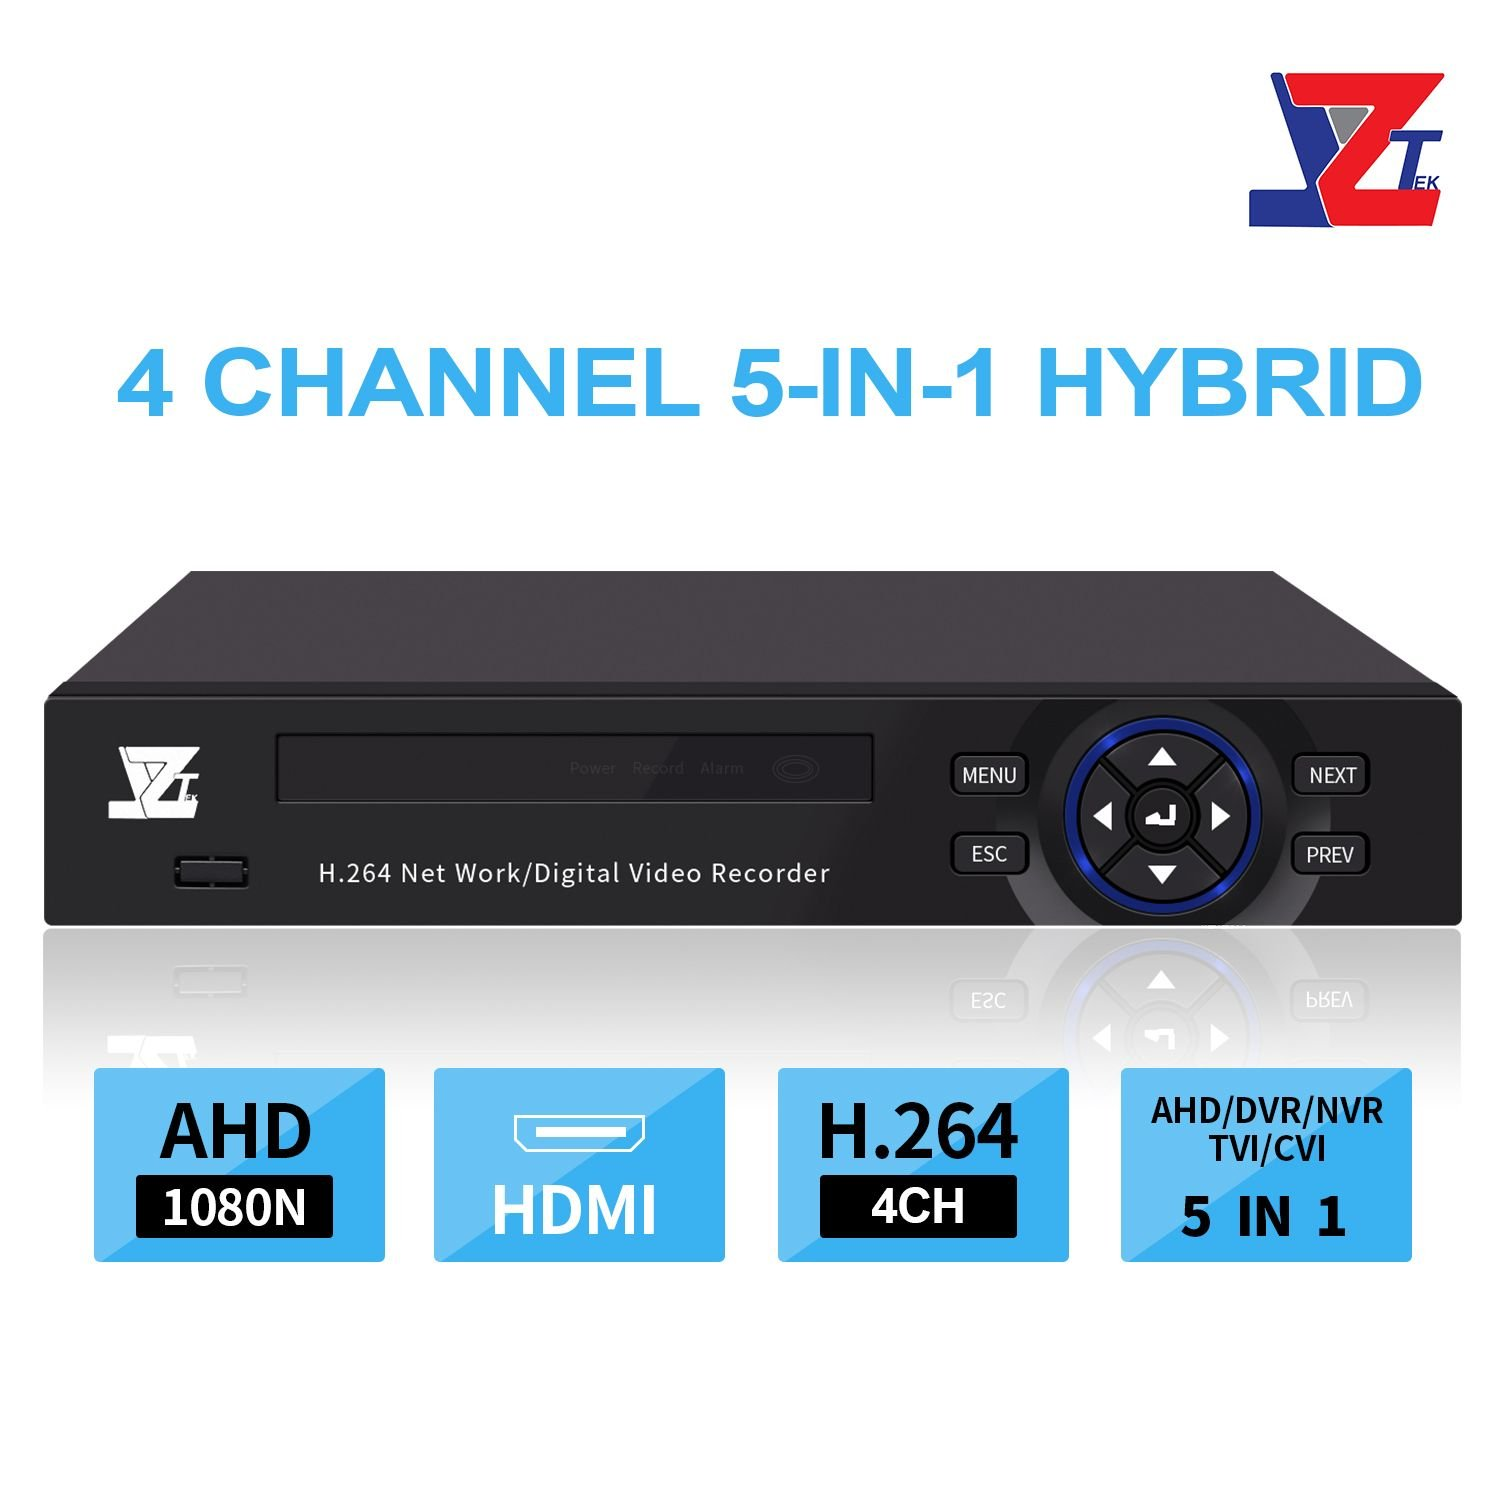 JZTEK 4ch 1080N Hybrid 5-in-1 AHD (1080P NVR+1080N AHD+960H Analog +TVI+CVI) CCTV 4-Channel dvr HDMI Output Quick QR Code Scan Remote View Motion Detection&email Alert Home Security Camera System